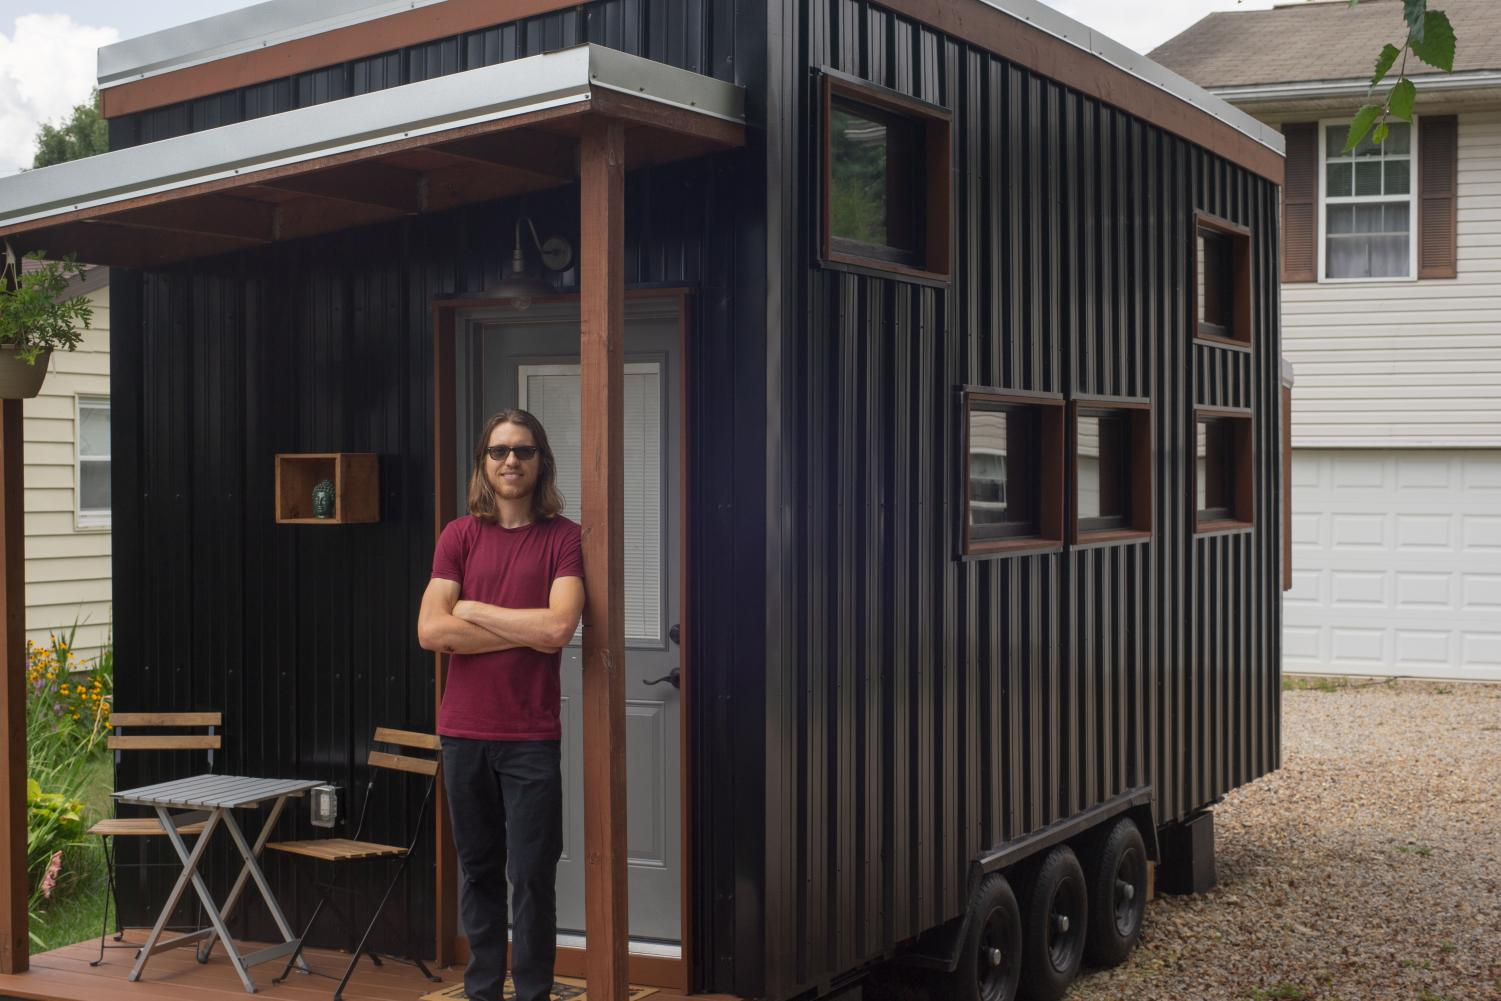 Jamie Hanks has spent the past two years building his newly-finished tiny house. Last month, he opened the house's door to guests looking for an alternative traveling experience.   Photo by Jonathan Hanks